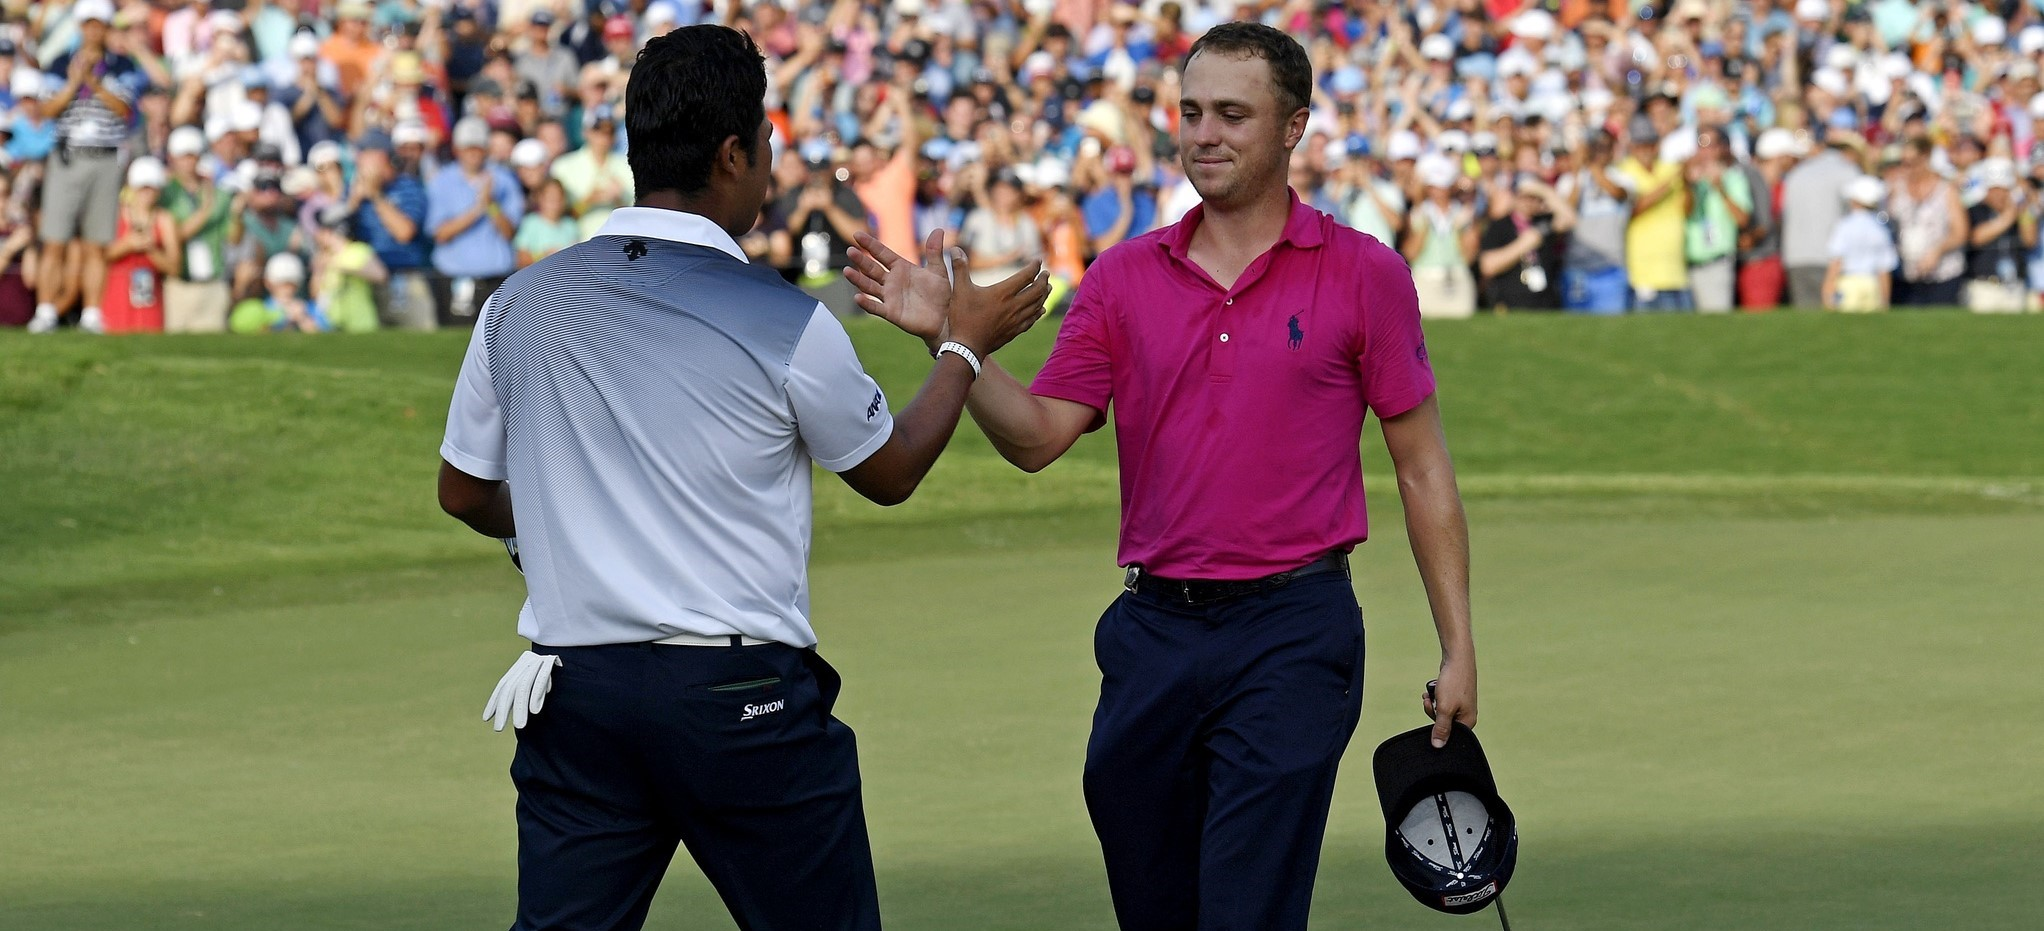 CJ Cup: Wind shakes up leaderboard article feature image